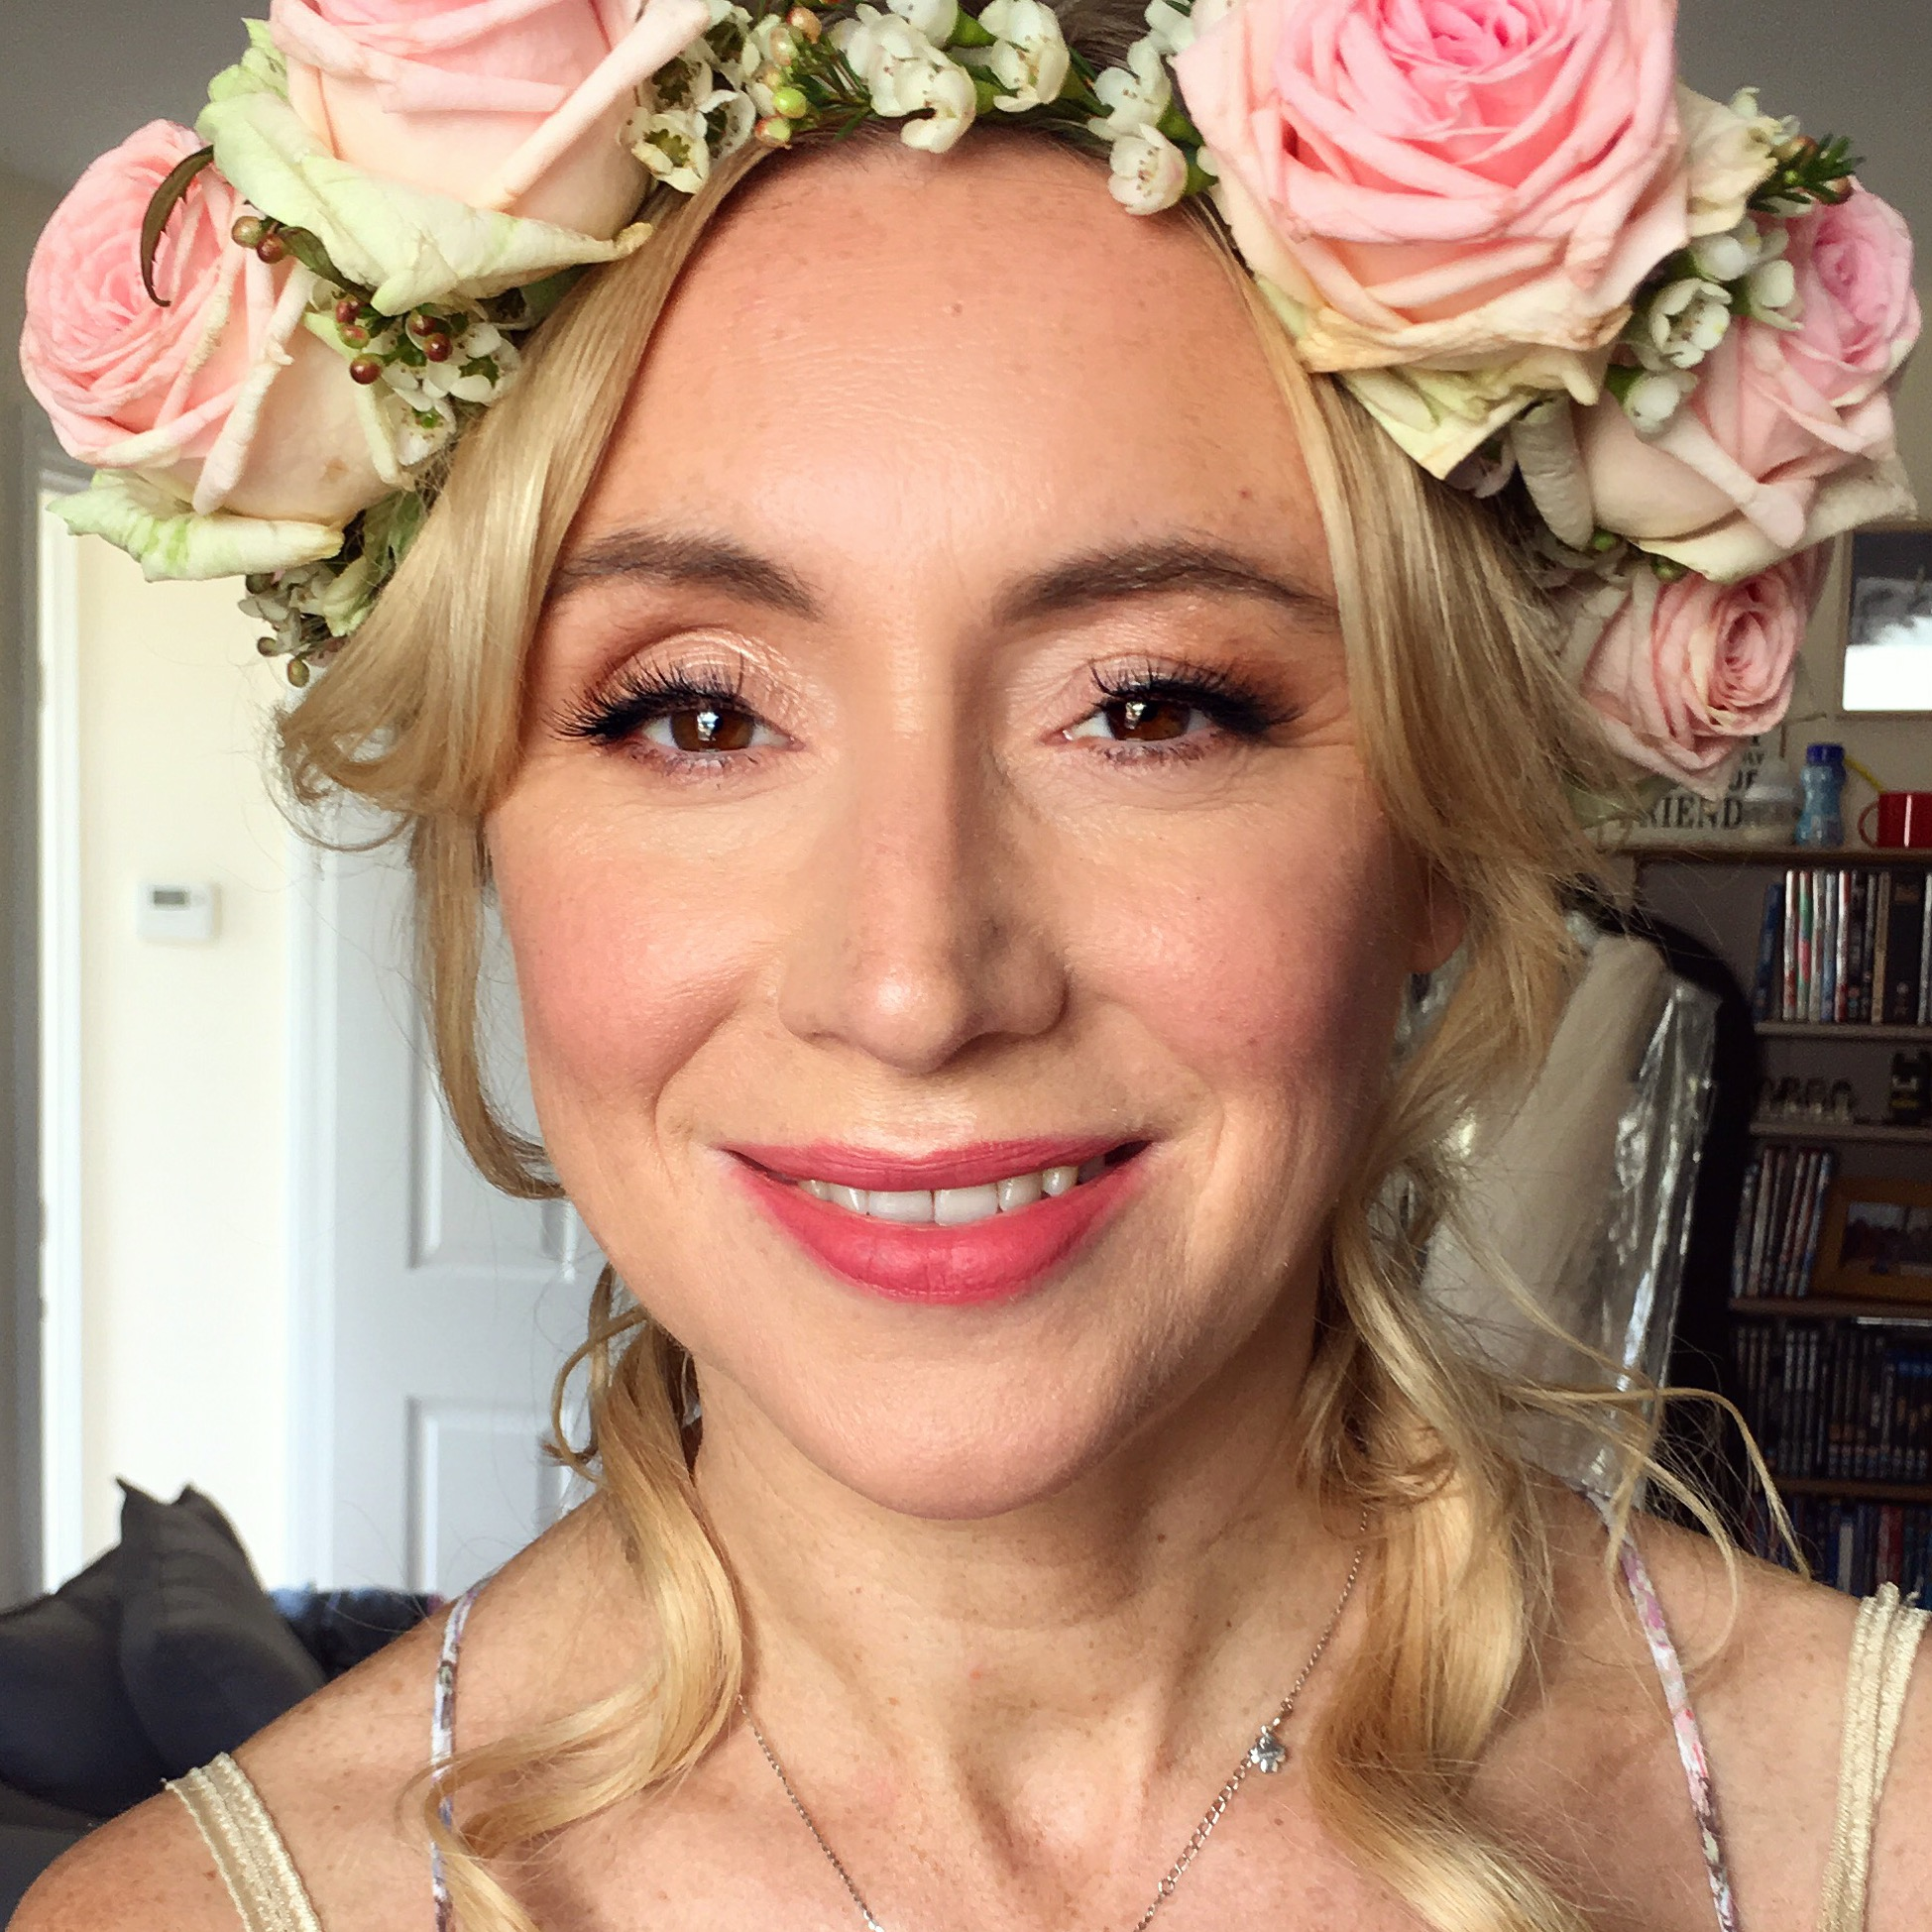 Flower Crown Bride's Makeup